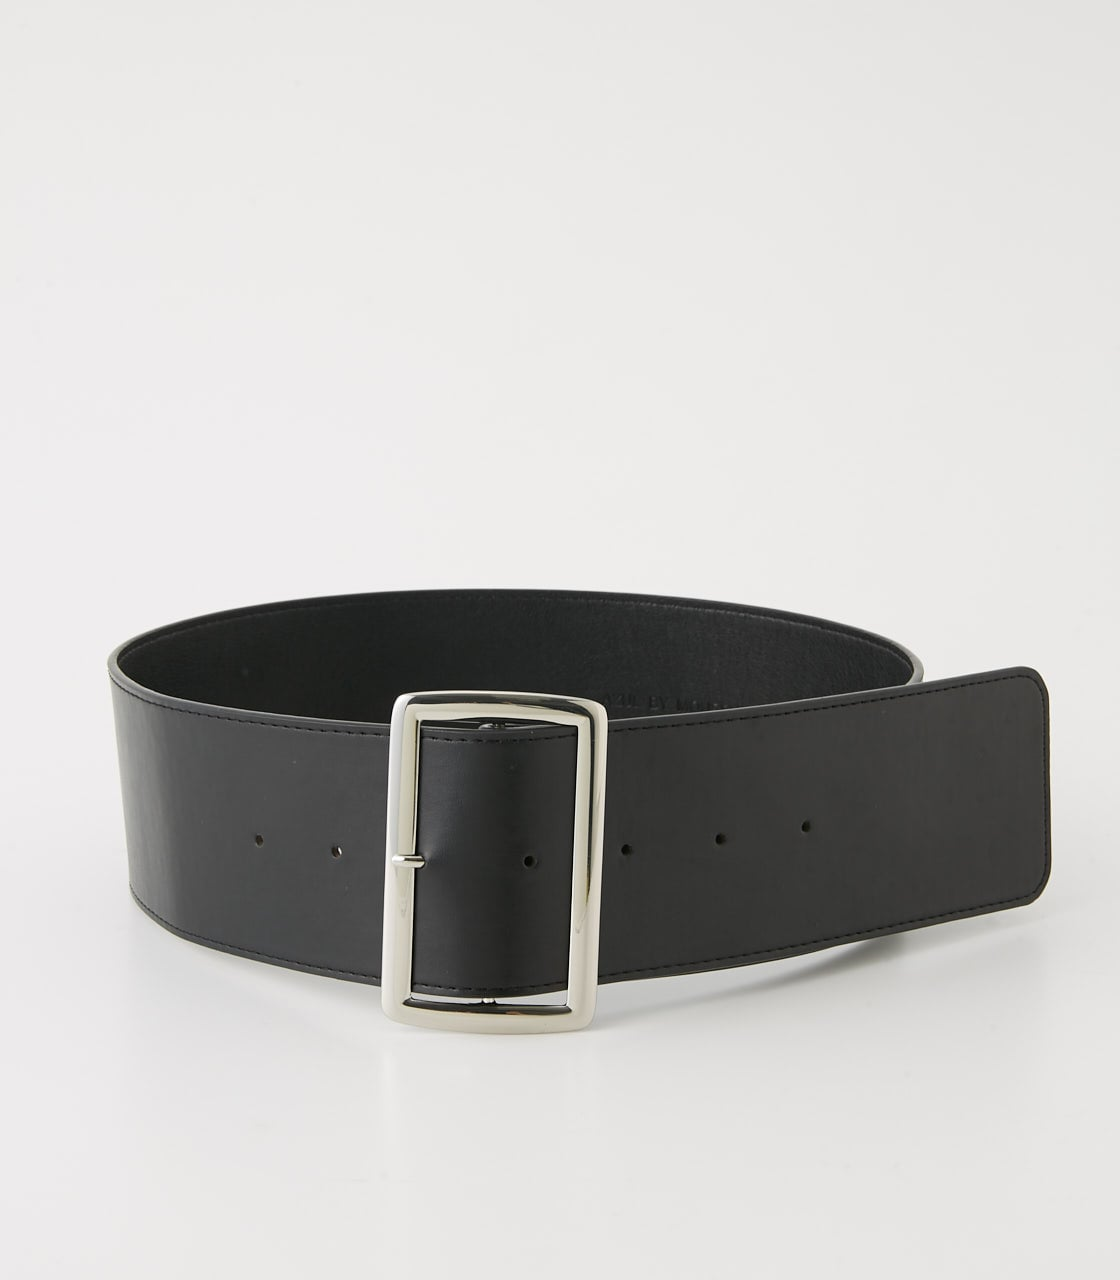 【AZUL BY MOUSSY】SQUARE BUCKLE WIDE BELT 詳細画像 BLK 1